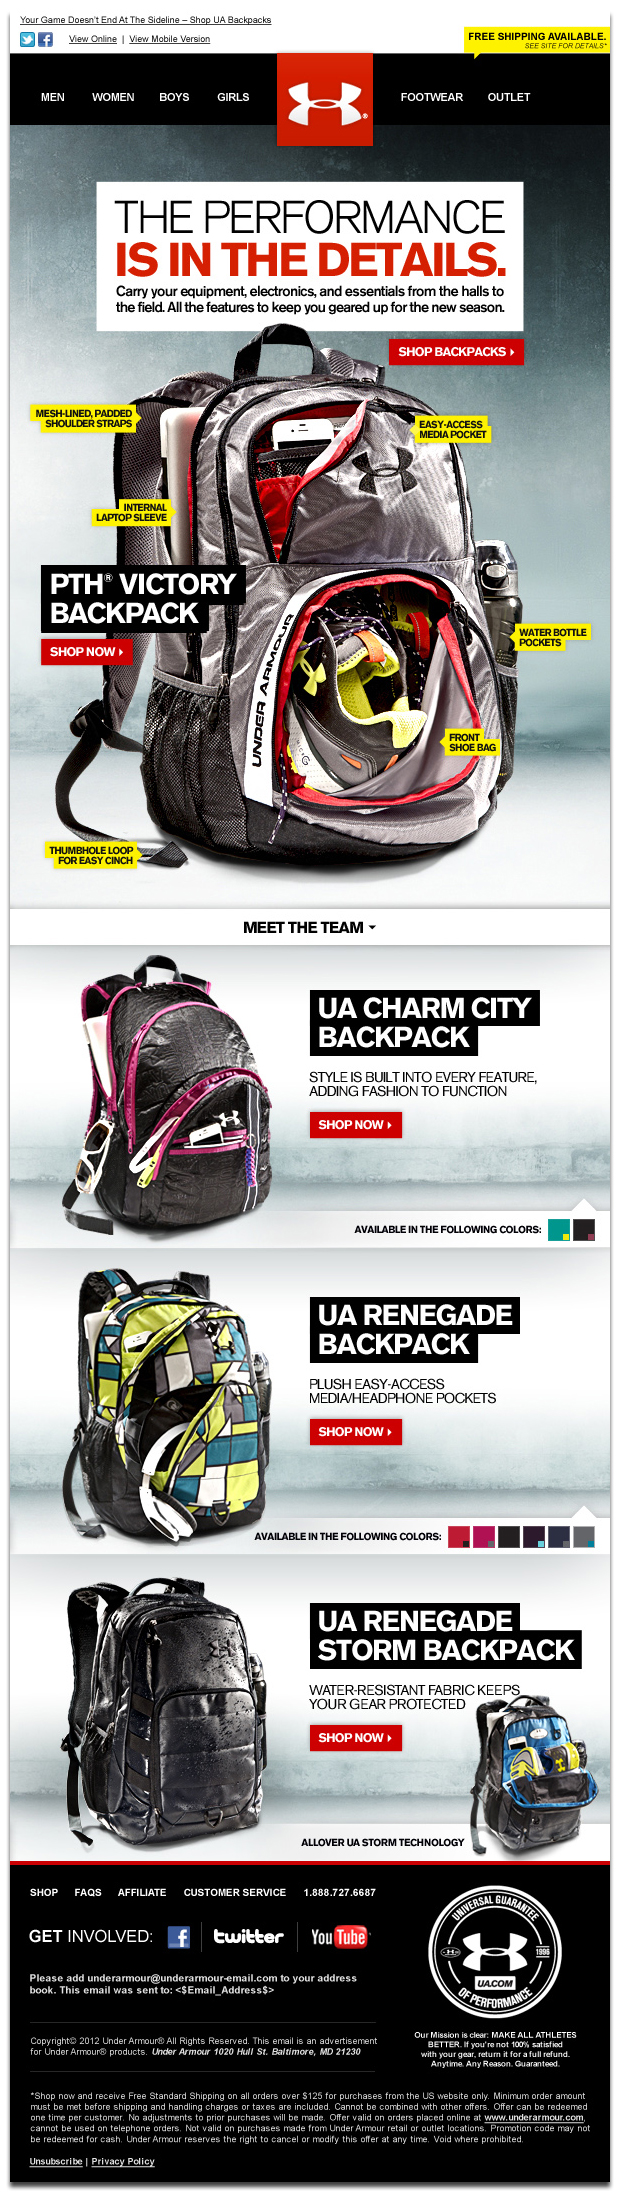 08142012_Backpacks.jpg